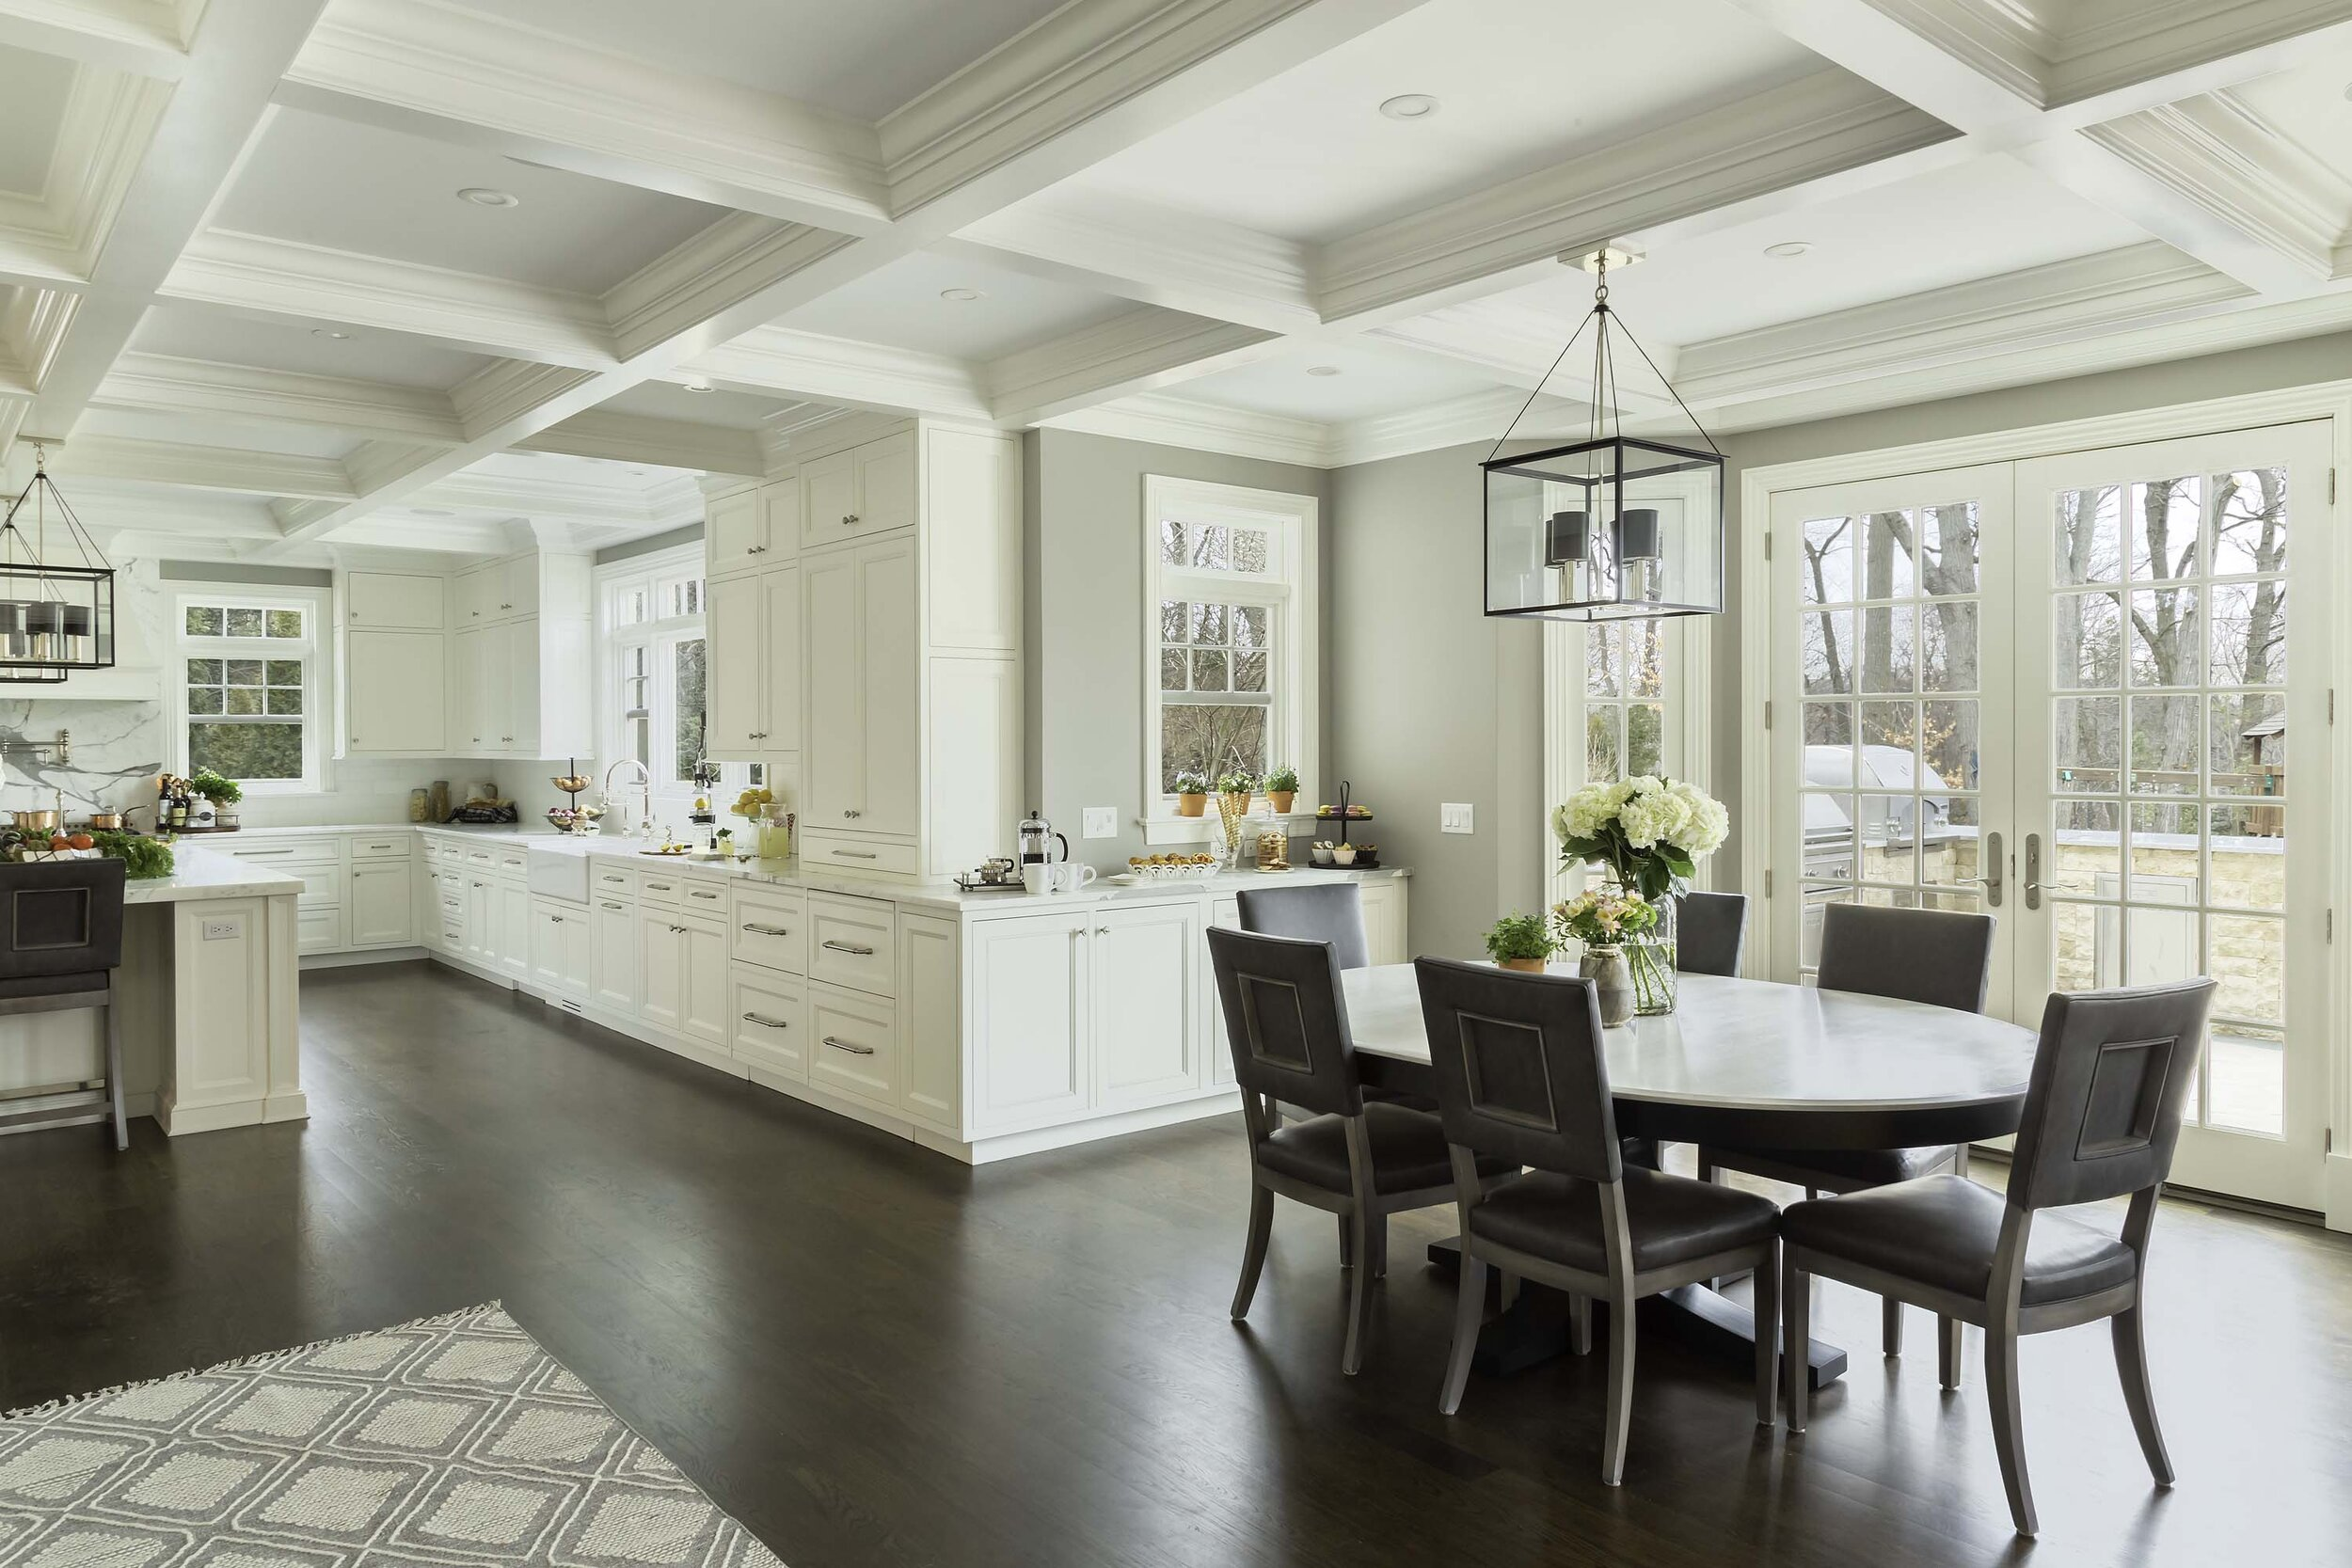 Transitional white kitchen with breakfast area overlooking patio